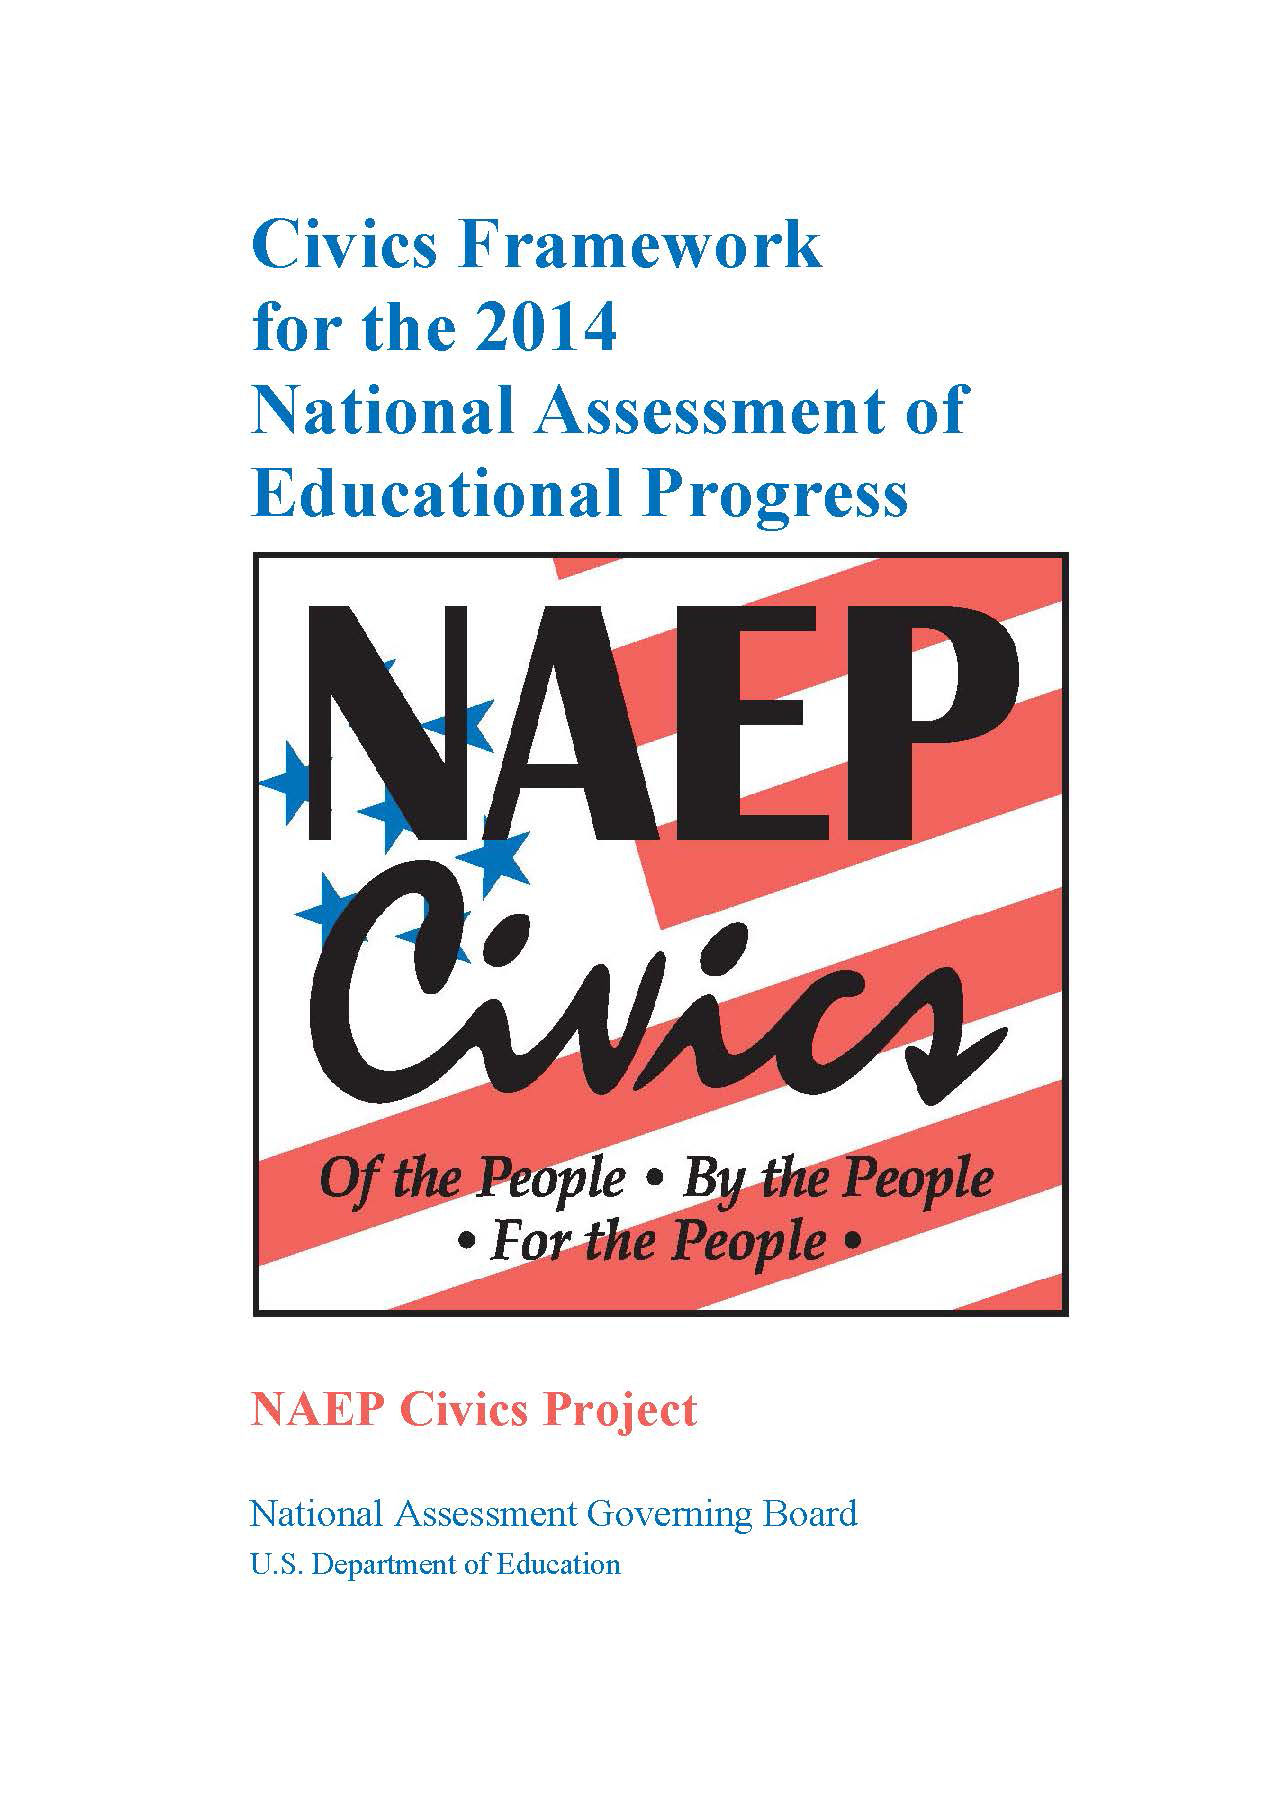 Cover of Civics Framework for the 2014 National Assessment of Educational Progress